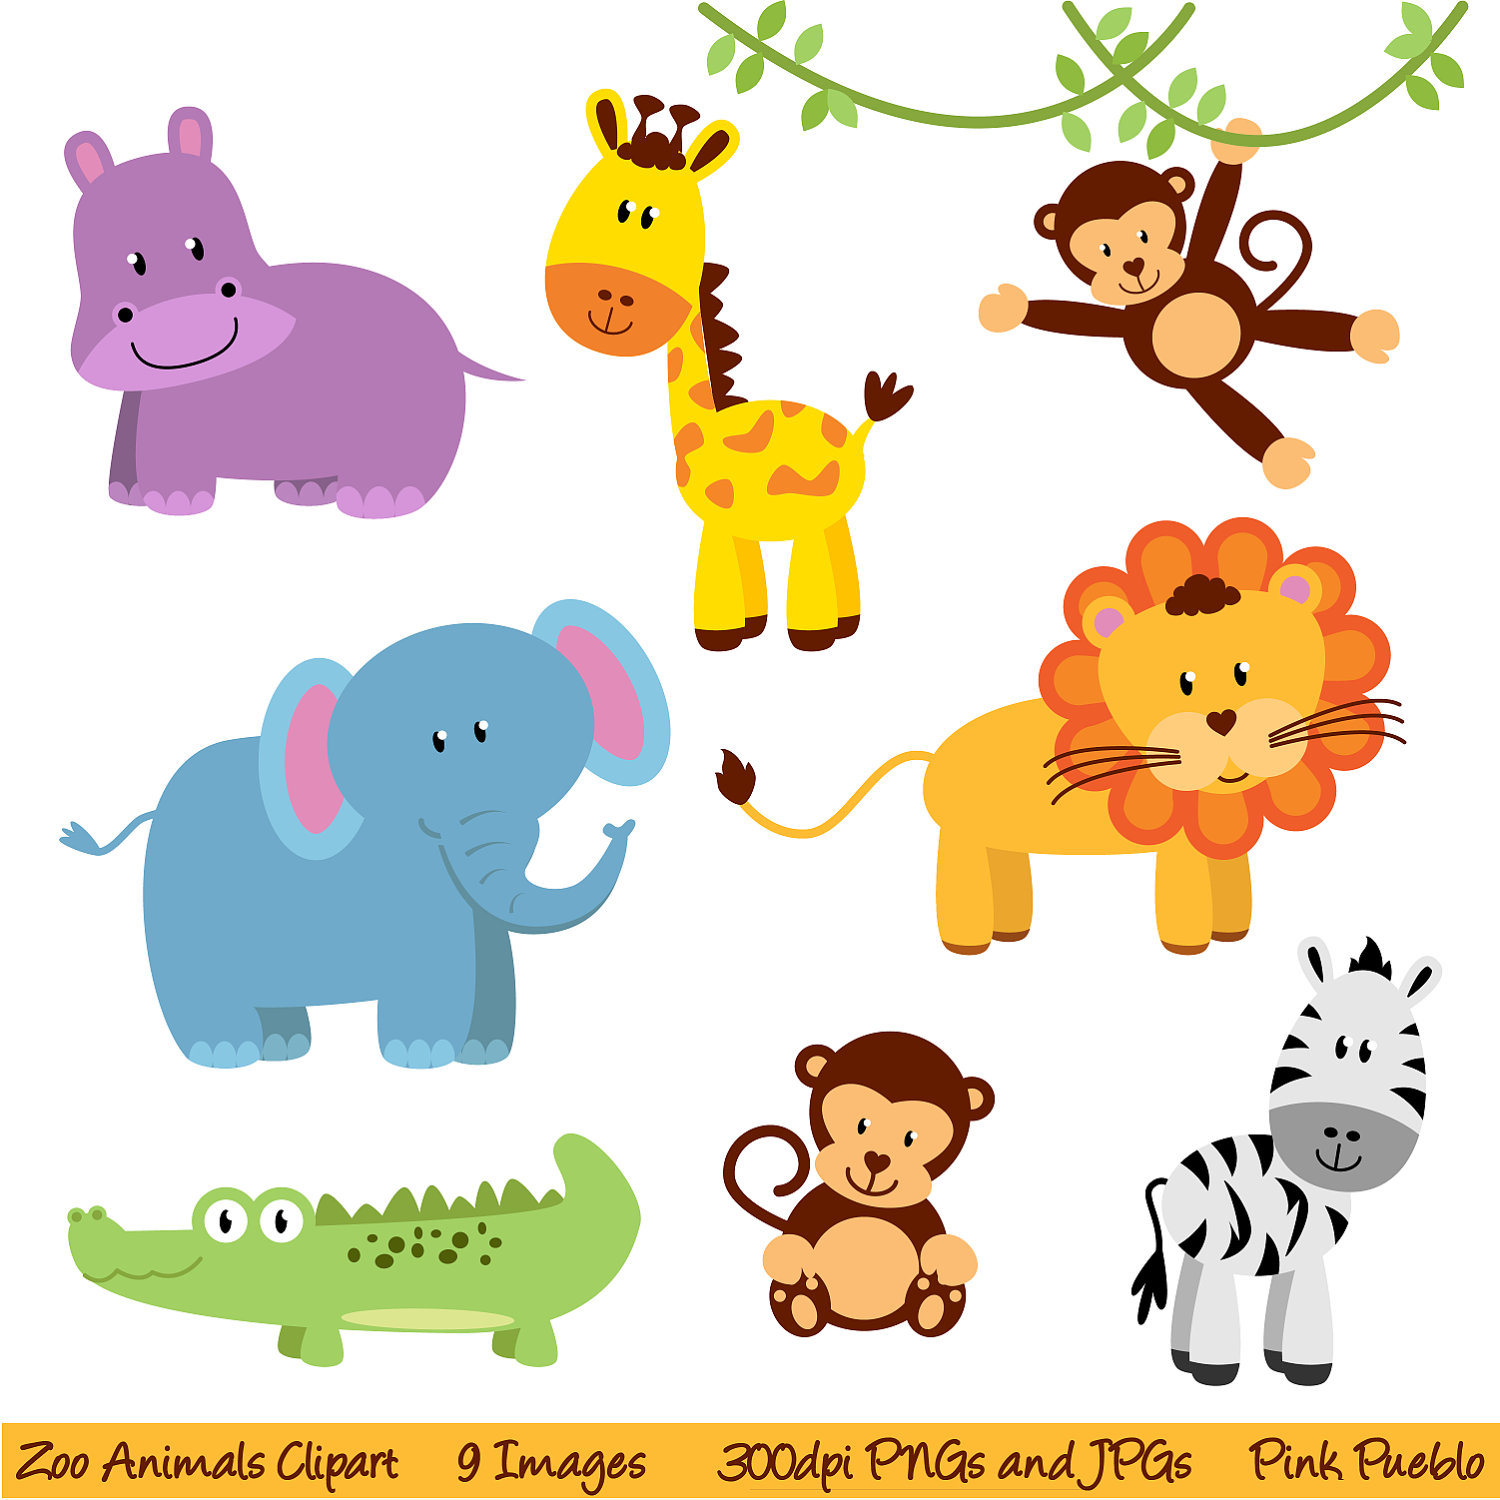 Zoo Animals Clipart Zoo Animals Clipart Zoo Animals Clipart Zoo